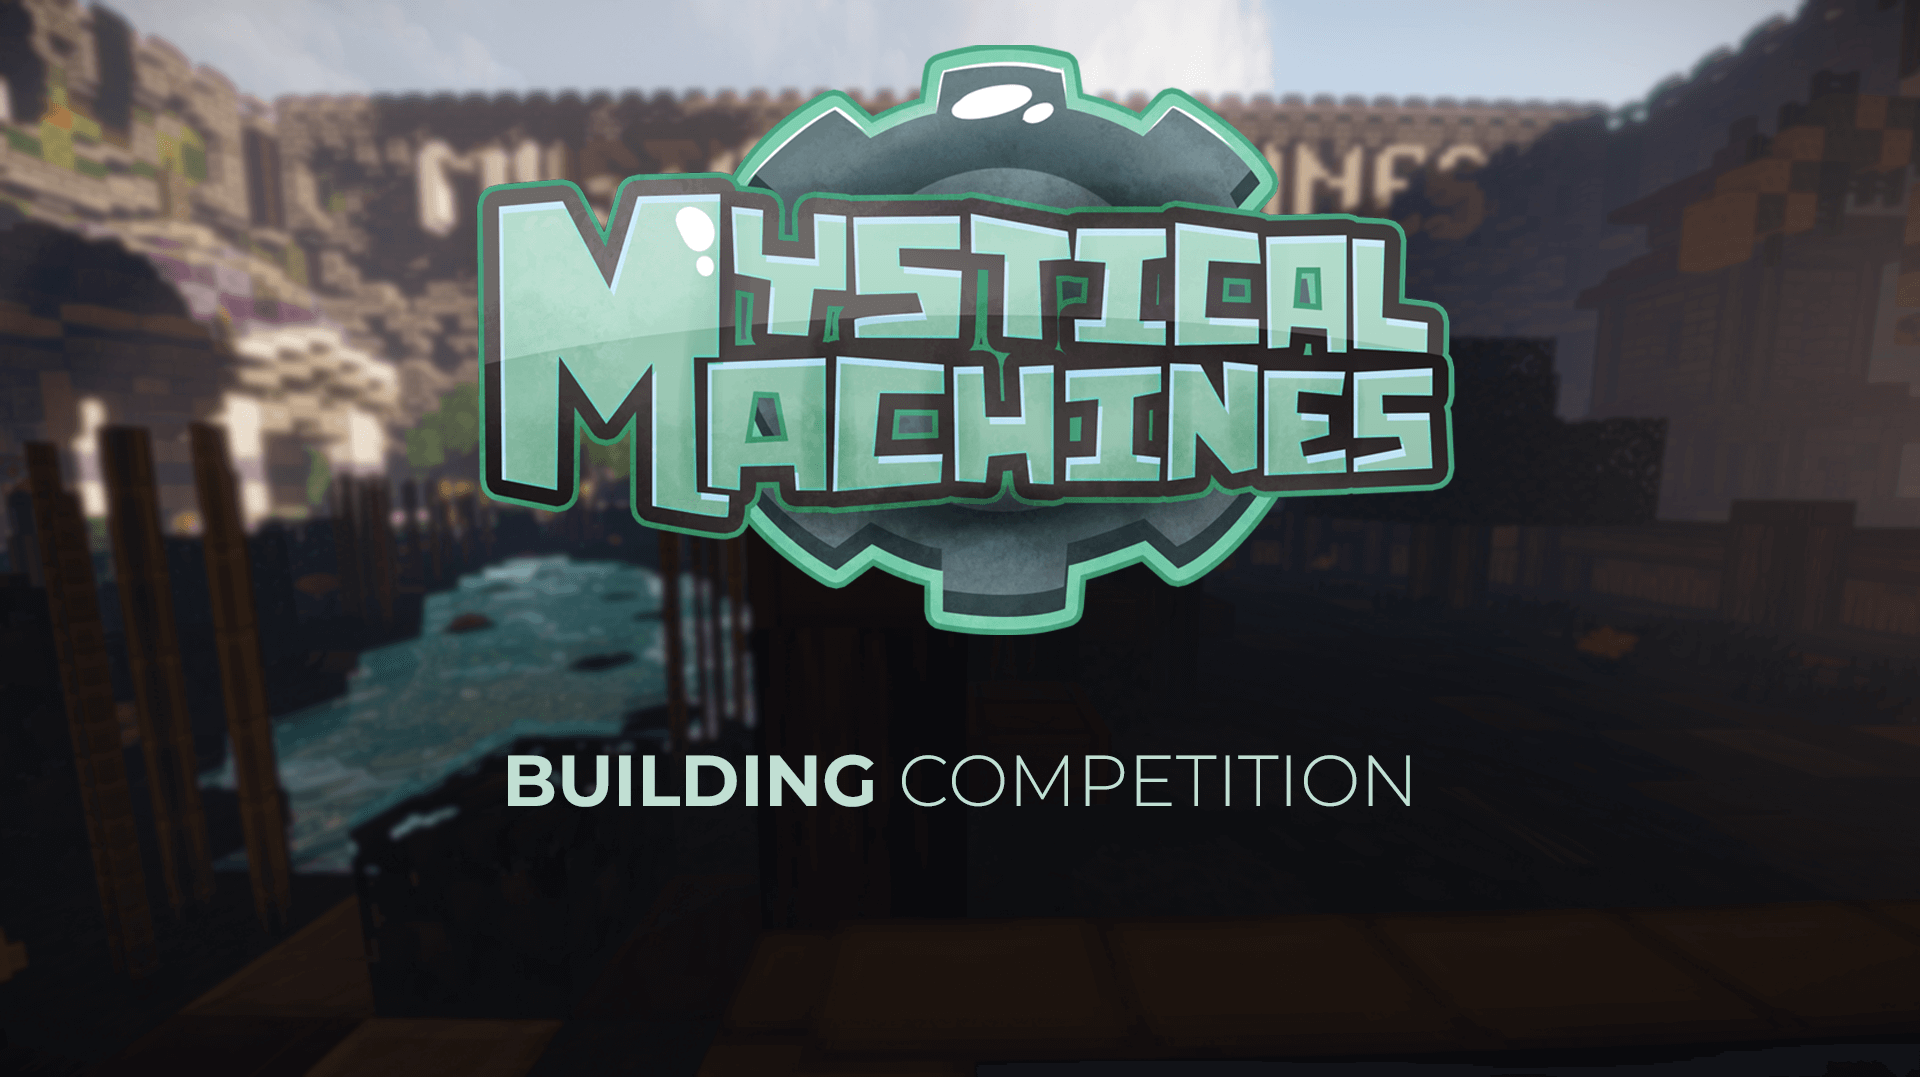 Build Competition Image